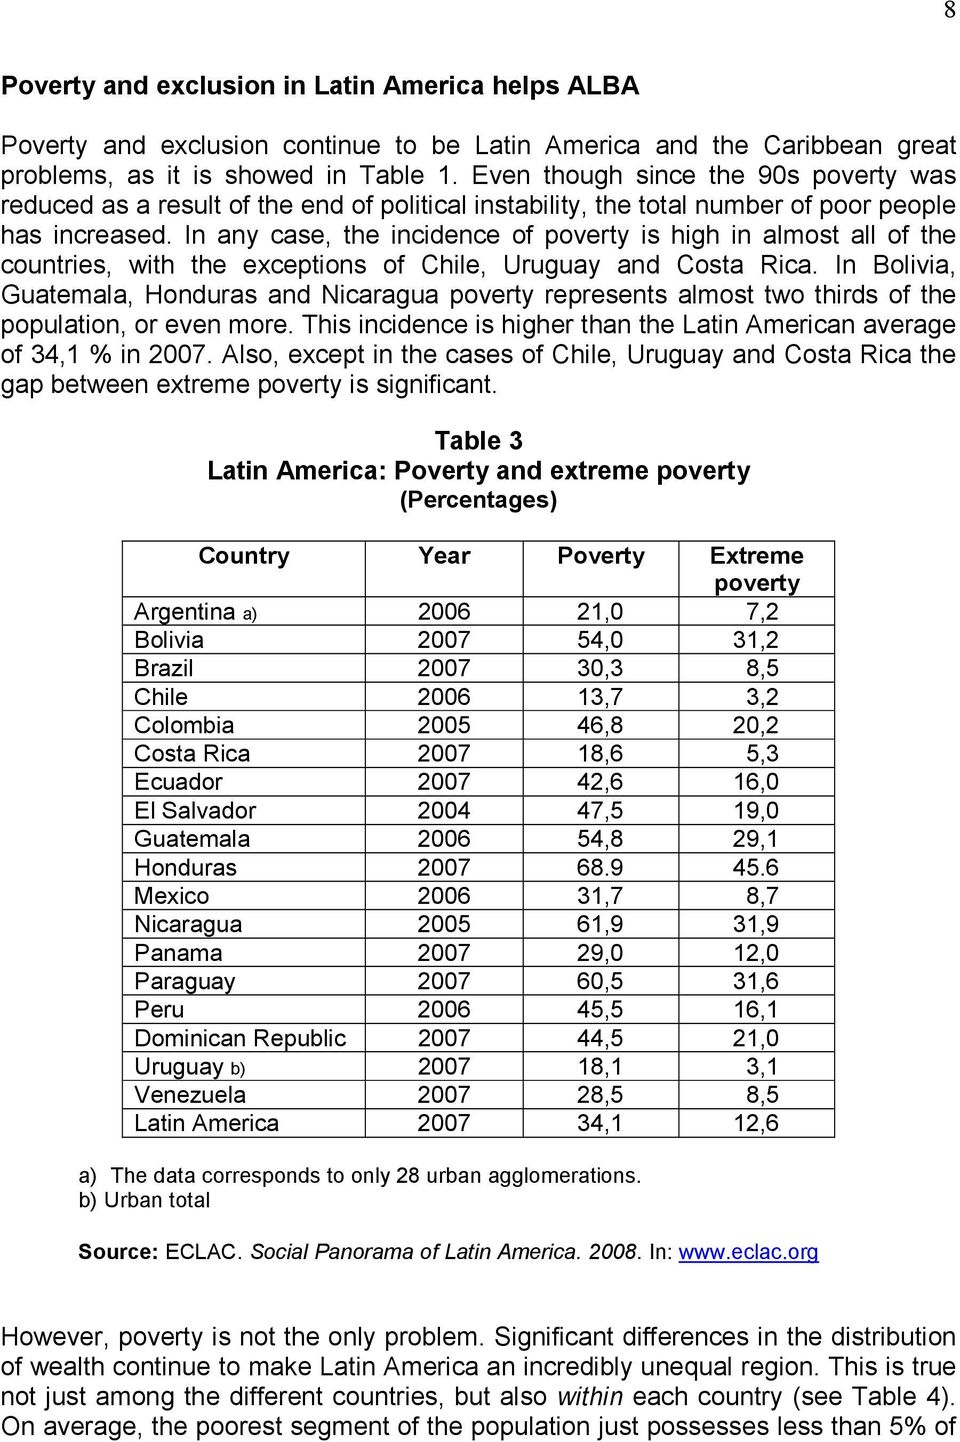 In any case, the incidence of poverty is high in almost all of the countries, with the exceptions of Chile, Uruguay and Costa Rica.